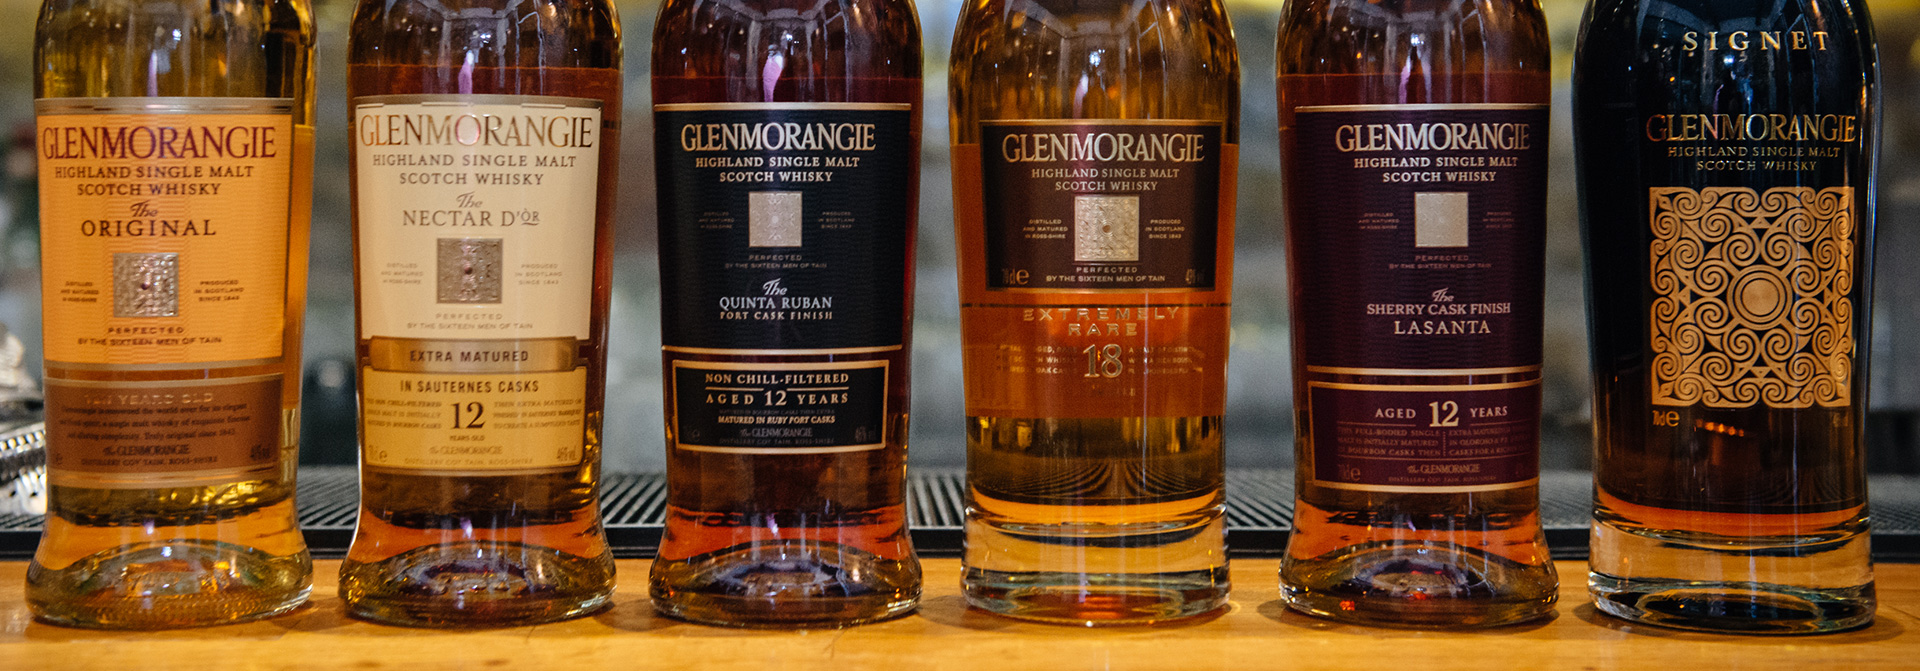 the tasters club tasting day glenmorangie whisky SQ bar